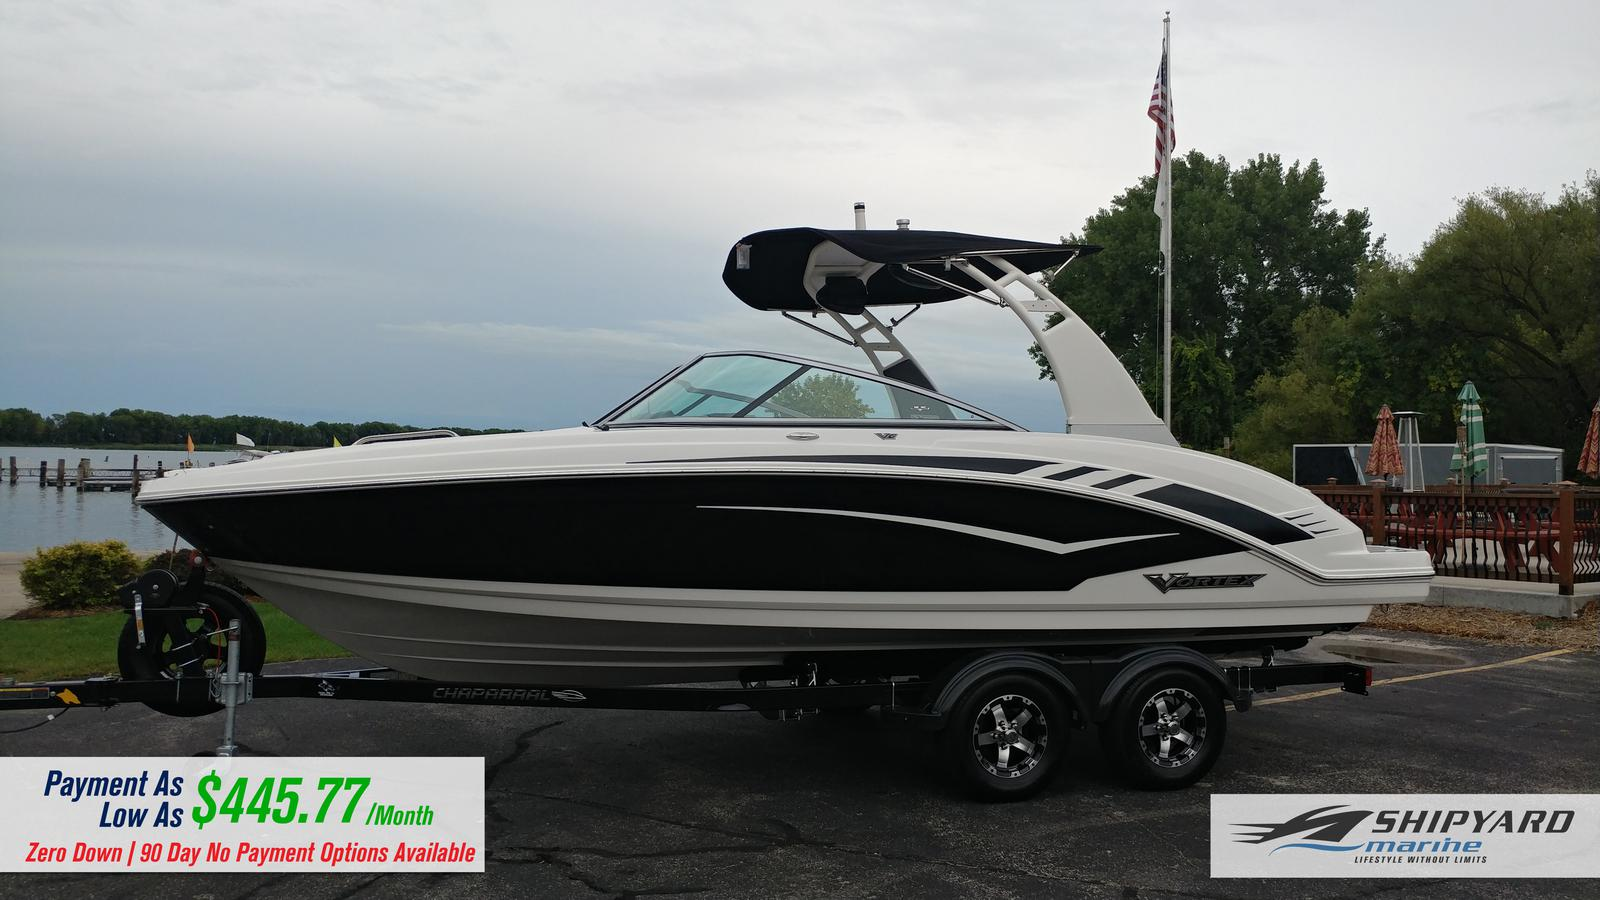 Inventory from Vortex Boats and Glastron Shipyard Marine